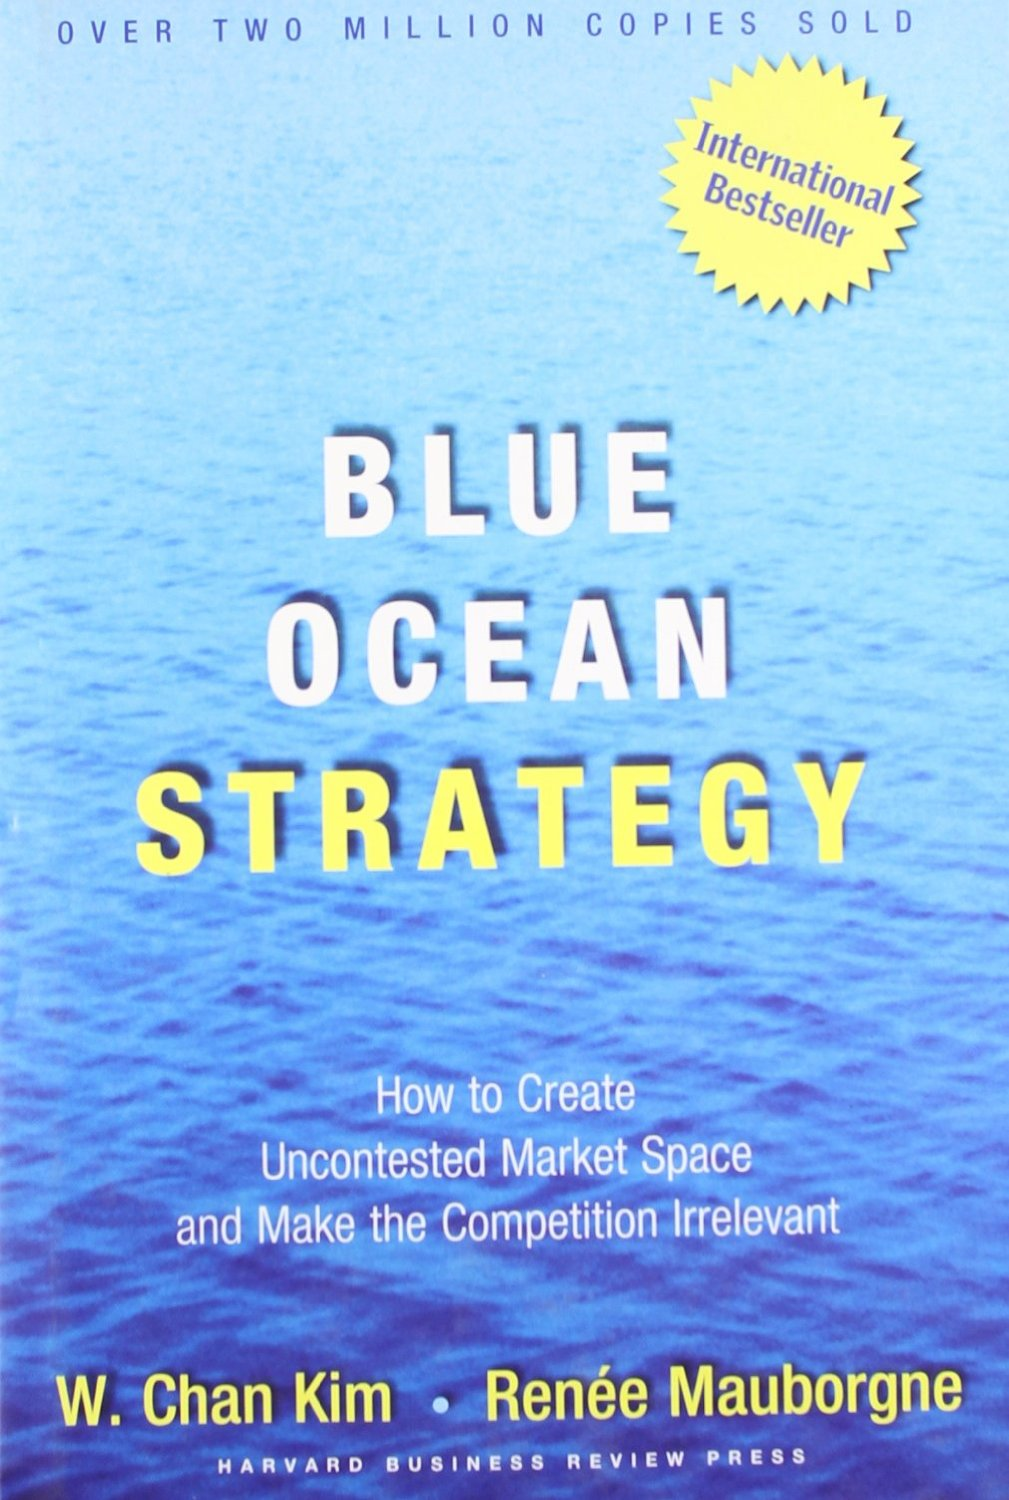 business strategy book review